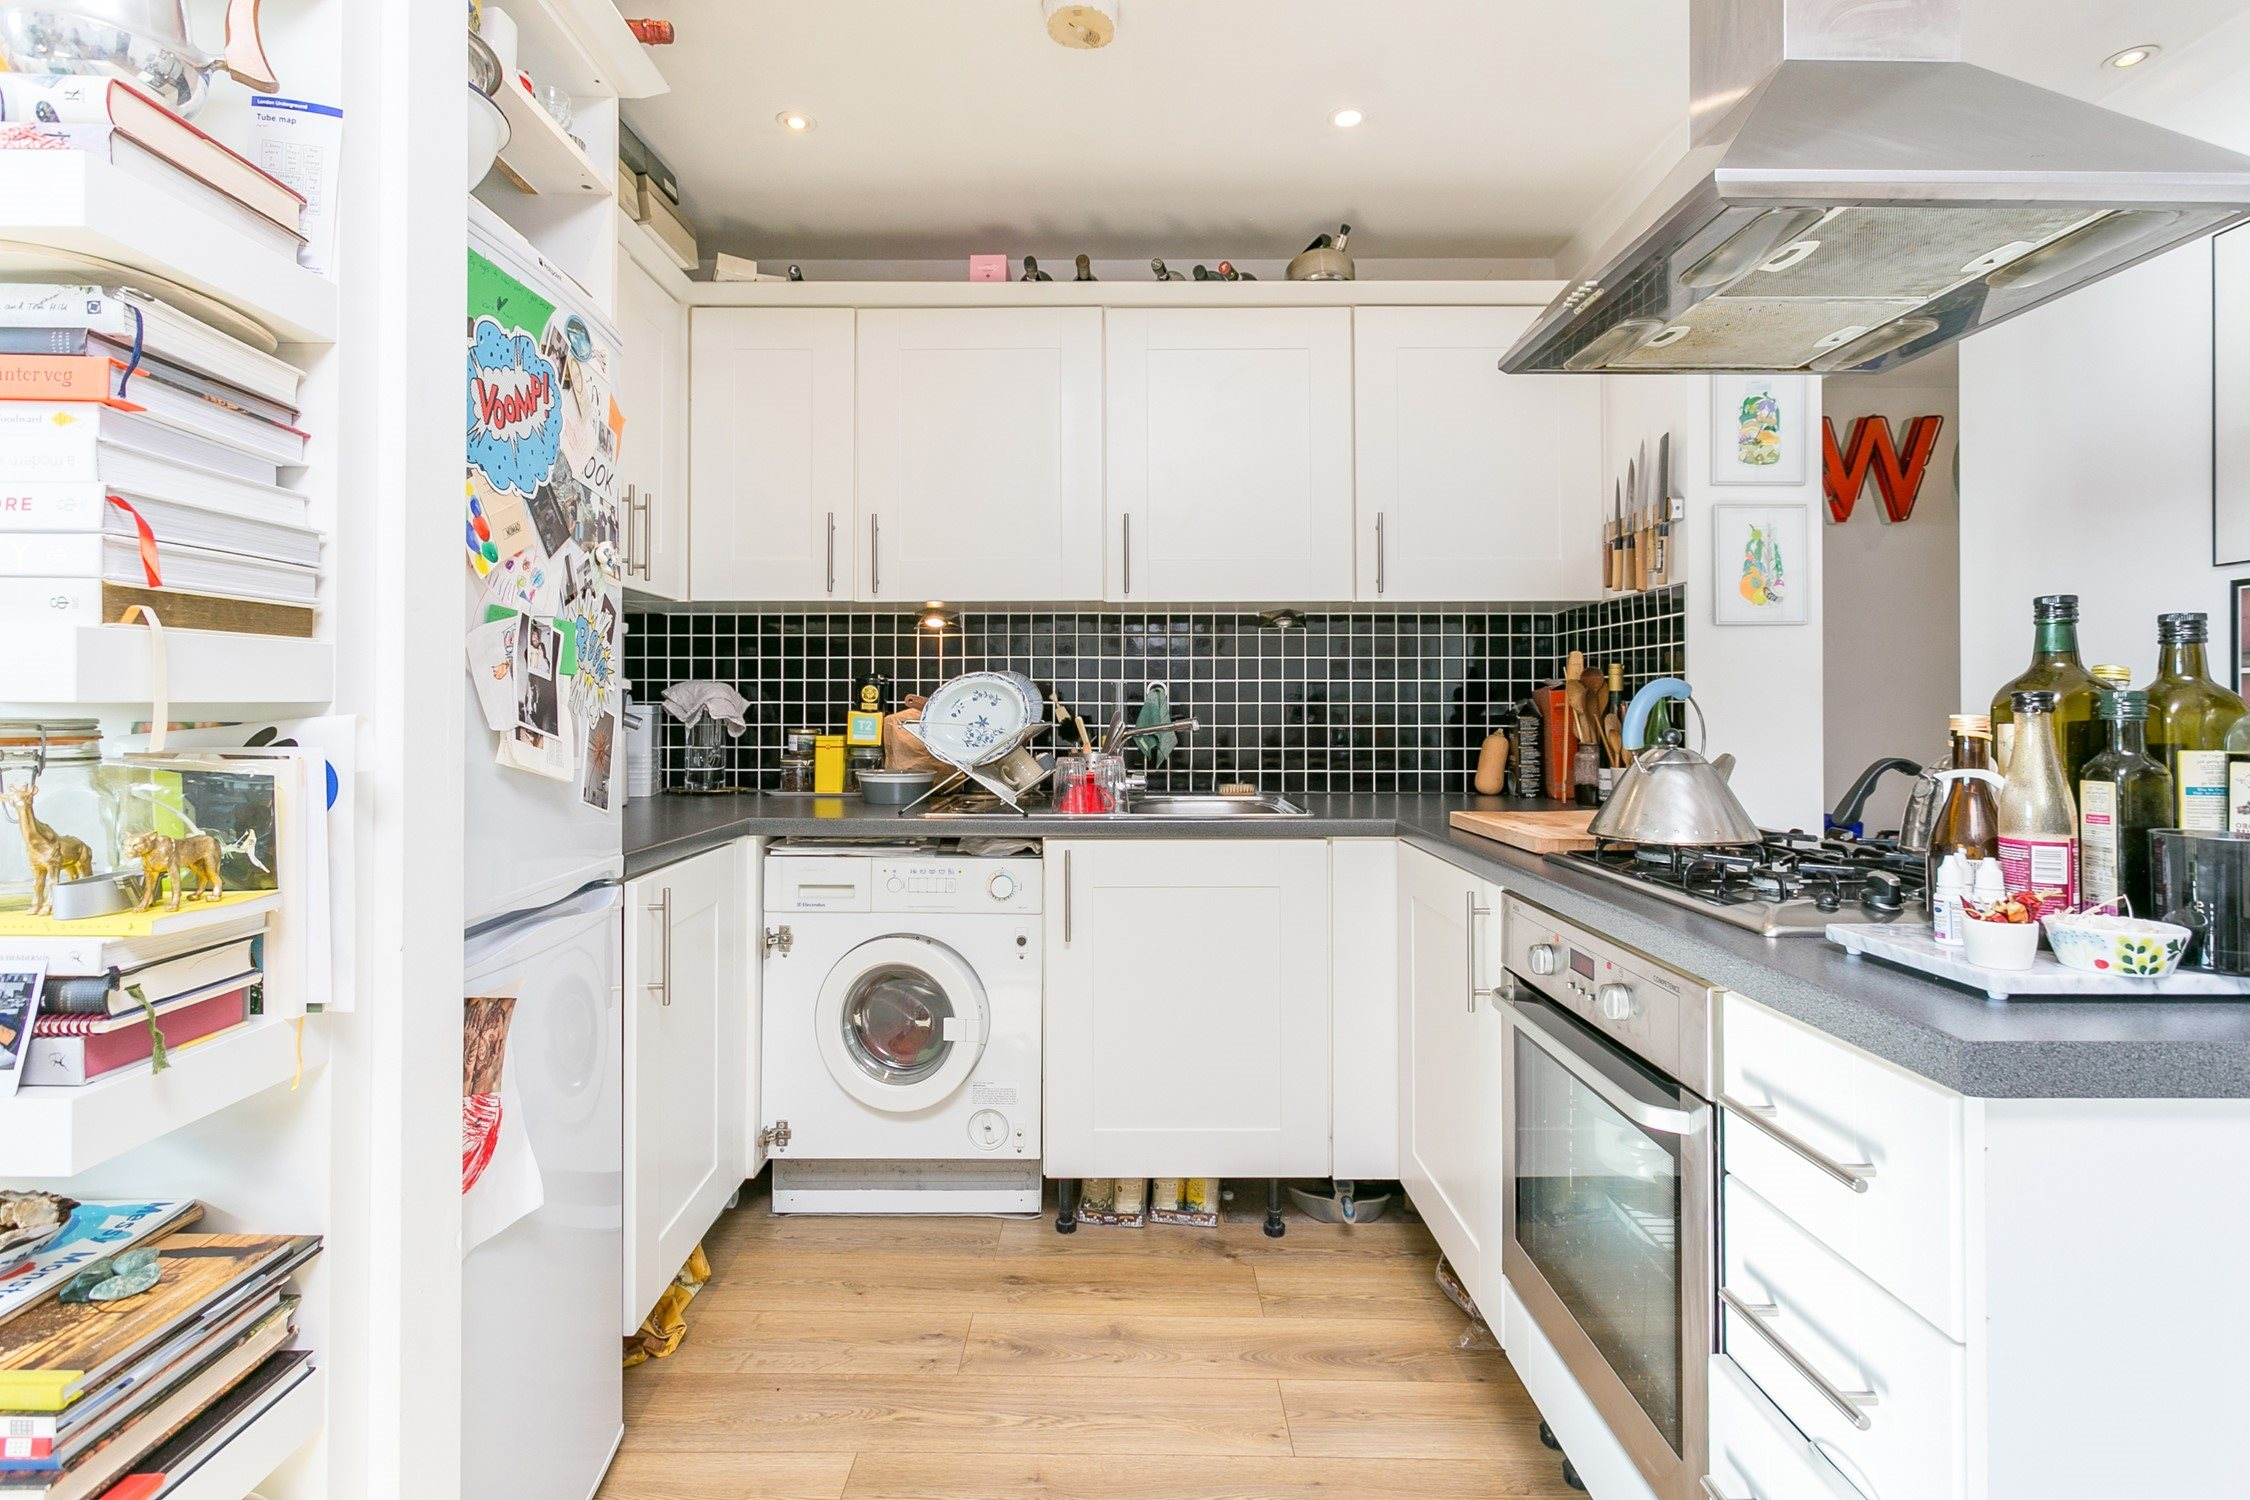 Portico - 2 Bedroom Flat recently let in Forest Gate: Shaftesbury ...